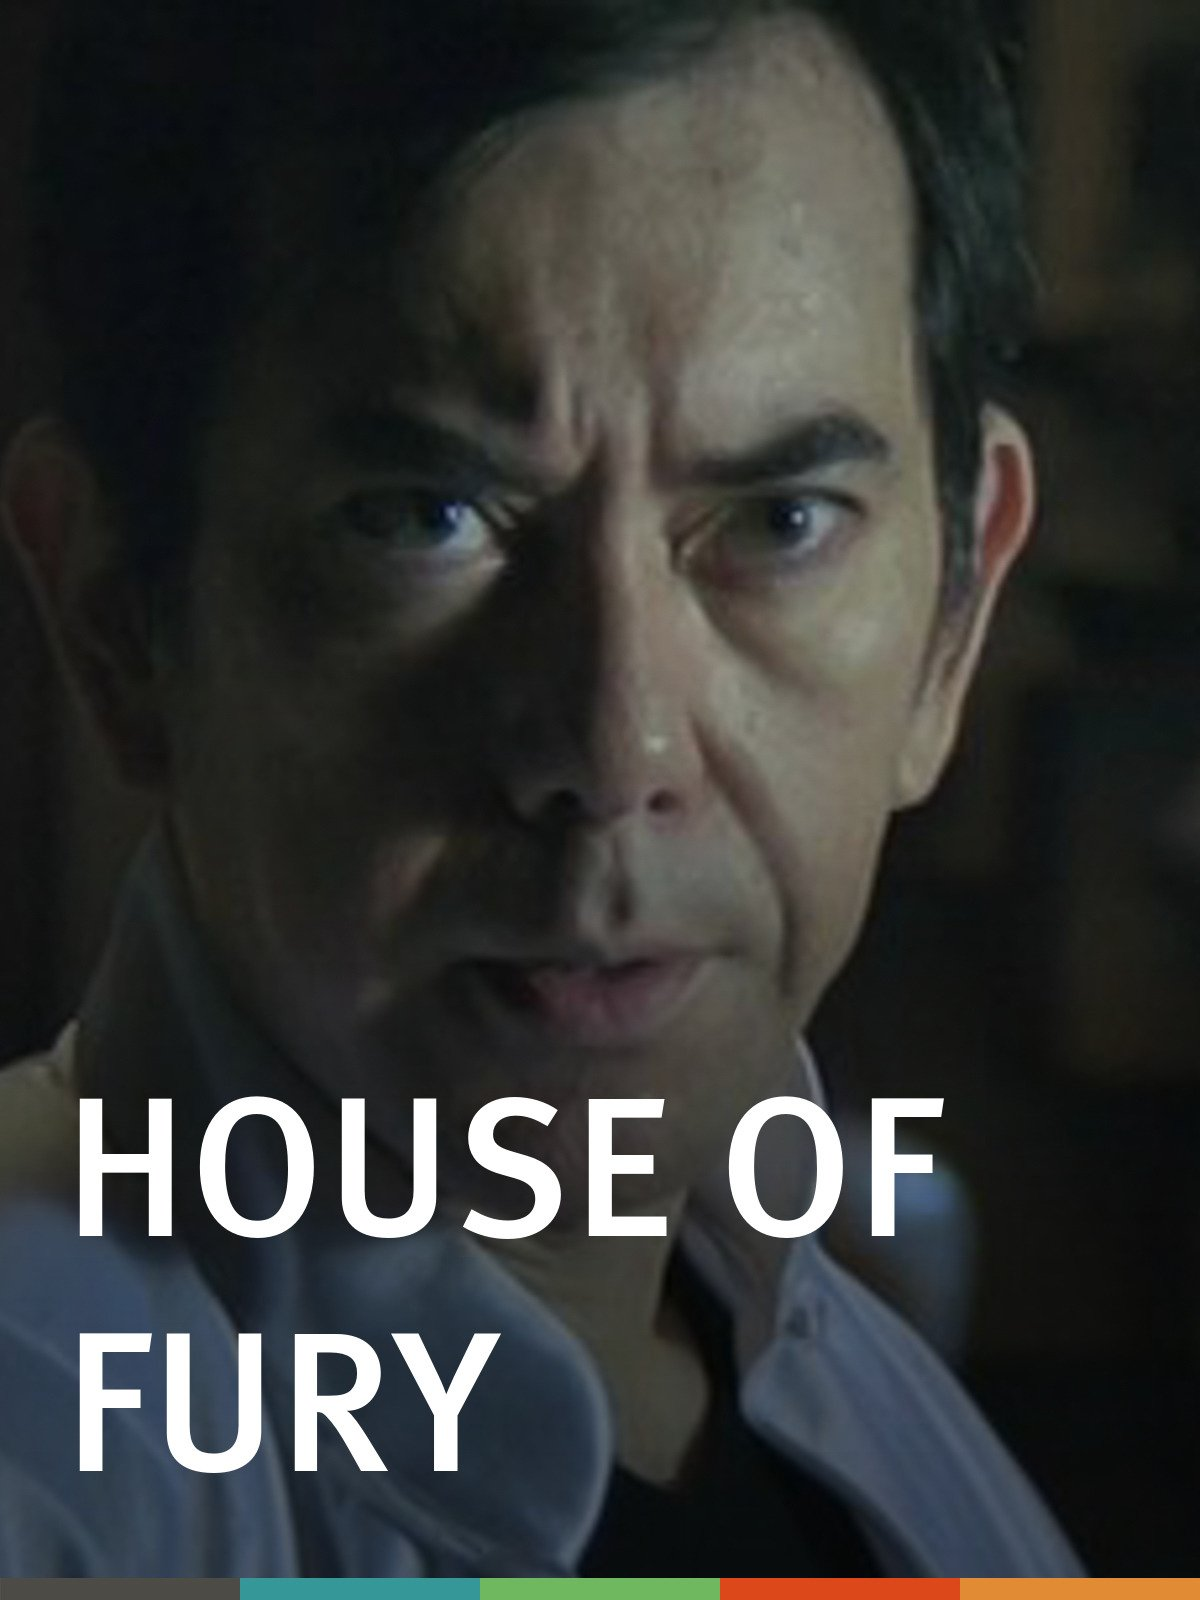 Watch House of Fury | Prime Video